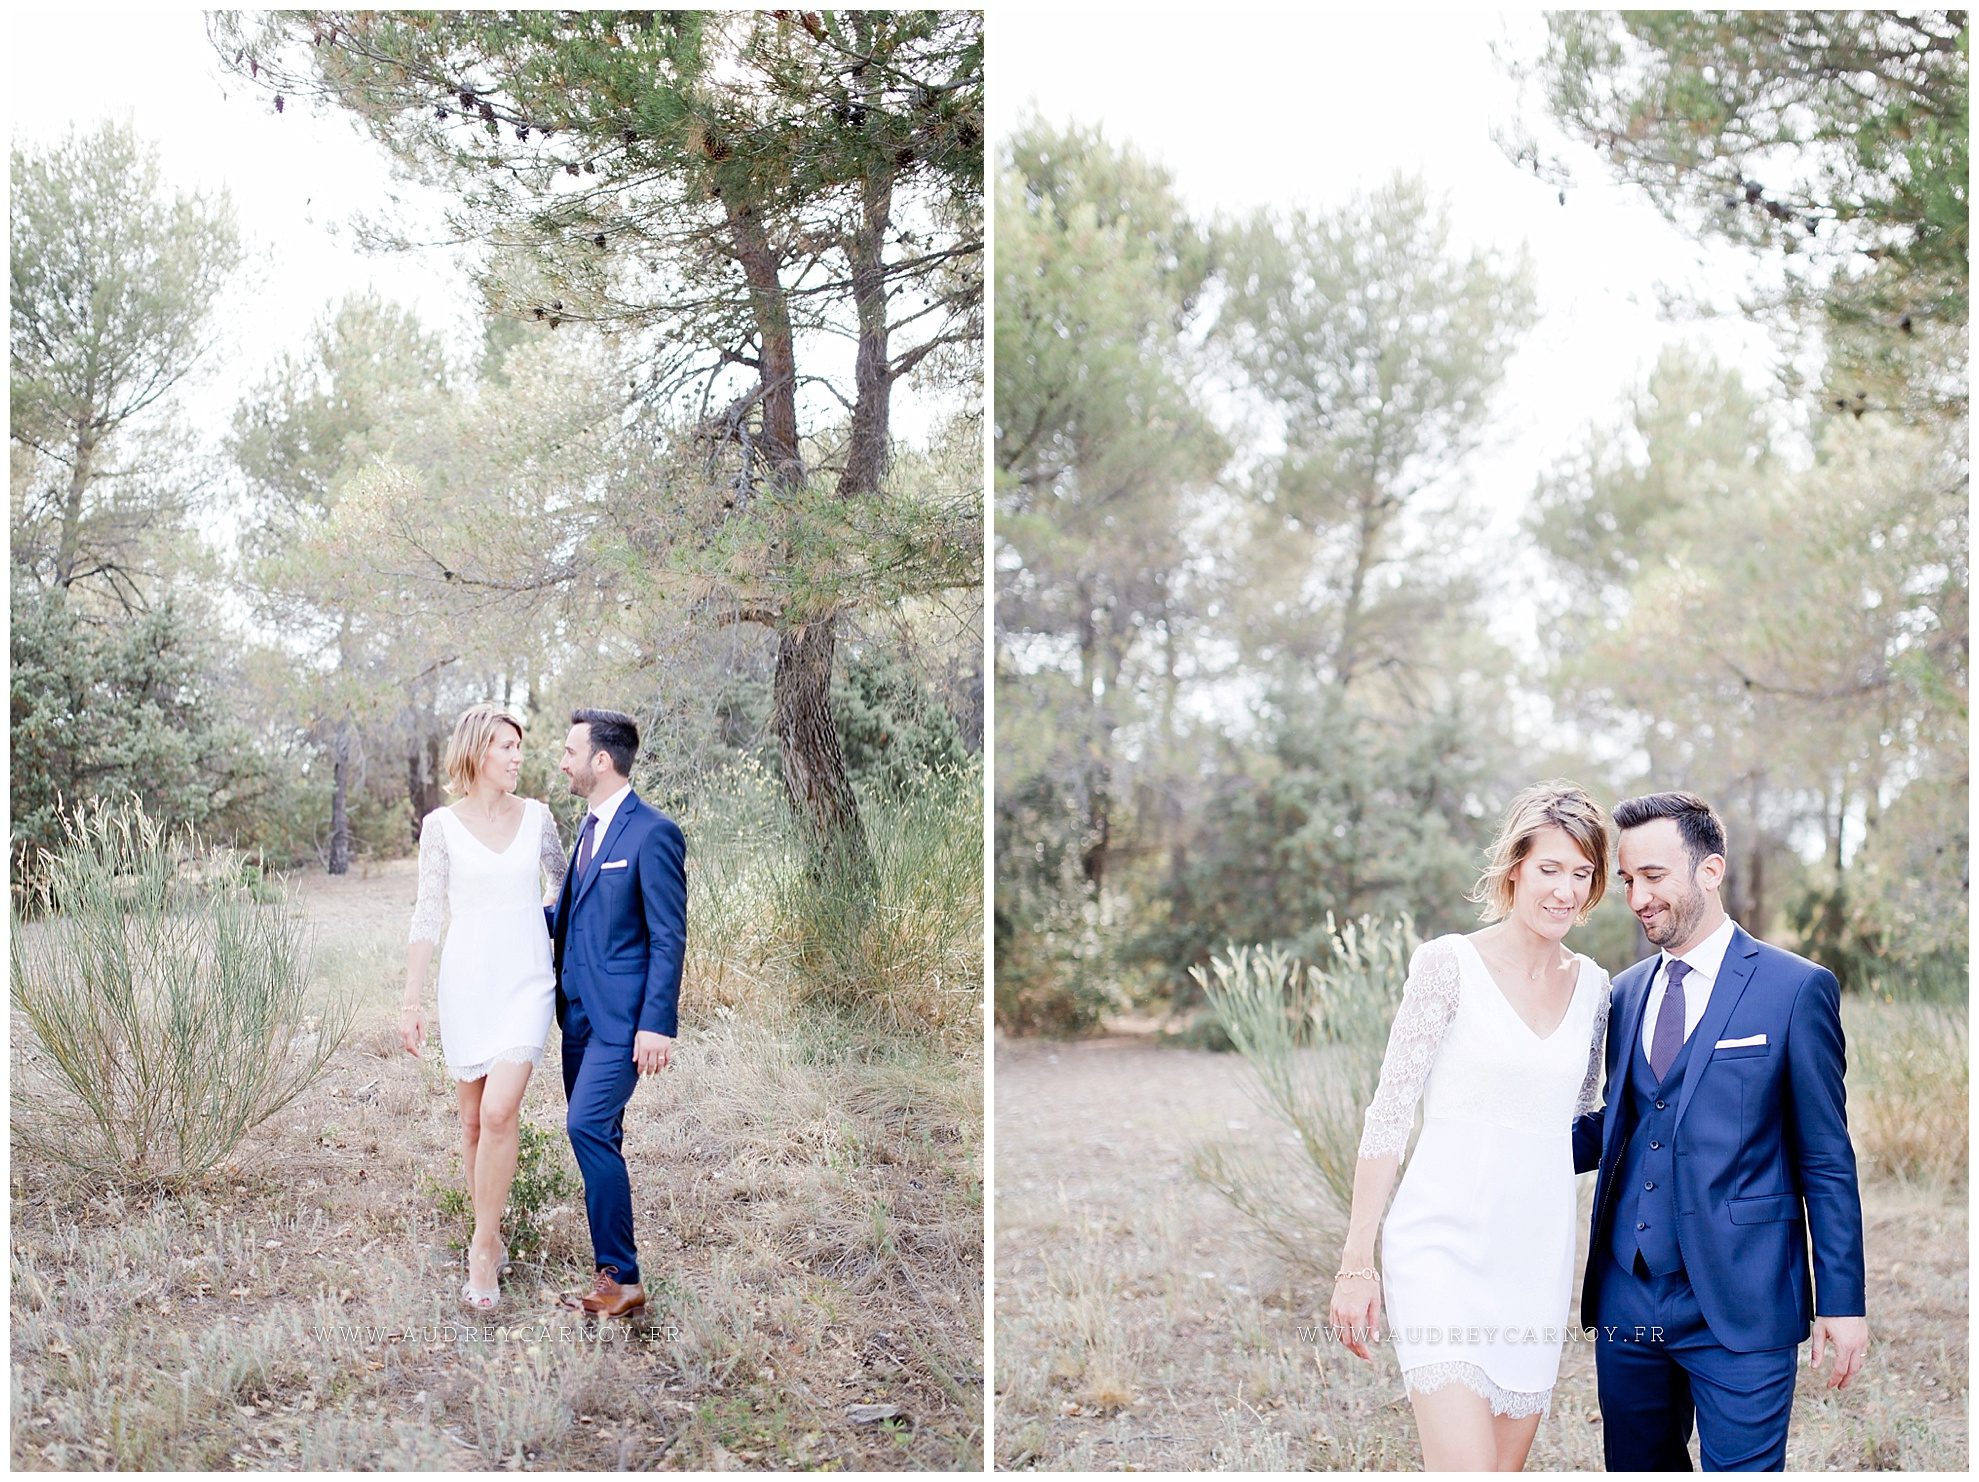 Mariage Pertuis | Laurence & Anthony 30